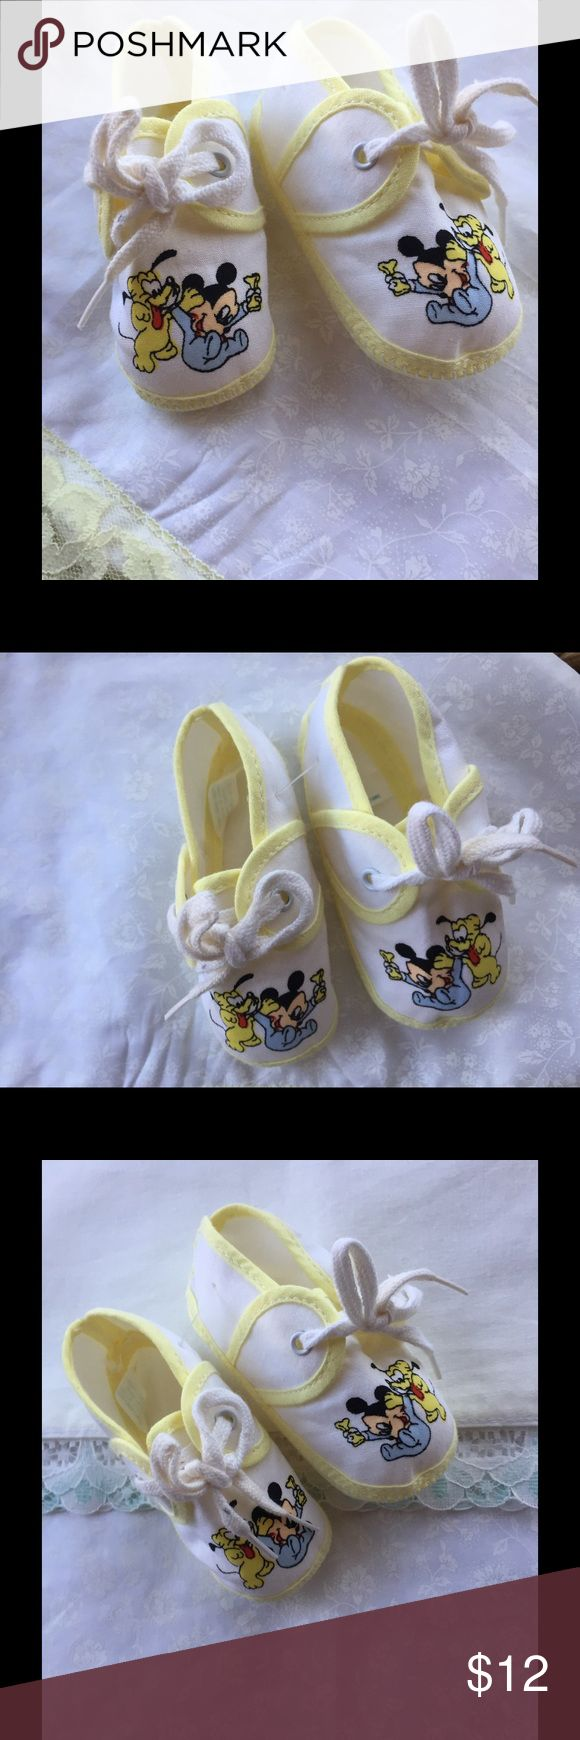 Vintage Mickey & Pluto Baby booties Vintage Mickey Mouse and Pluto Newborn Baby Booties such a cute gift for welcoming Baby home. Vintage Shoes Baby & Walker